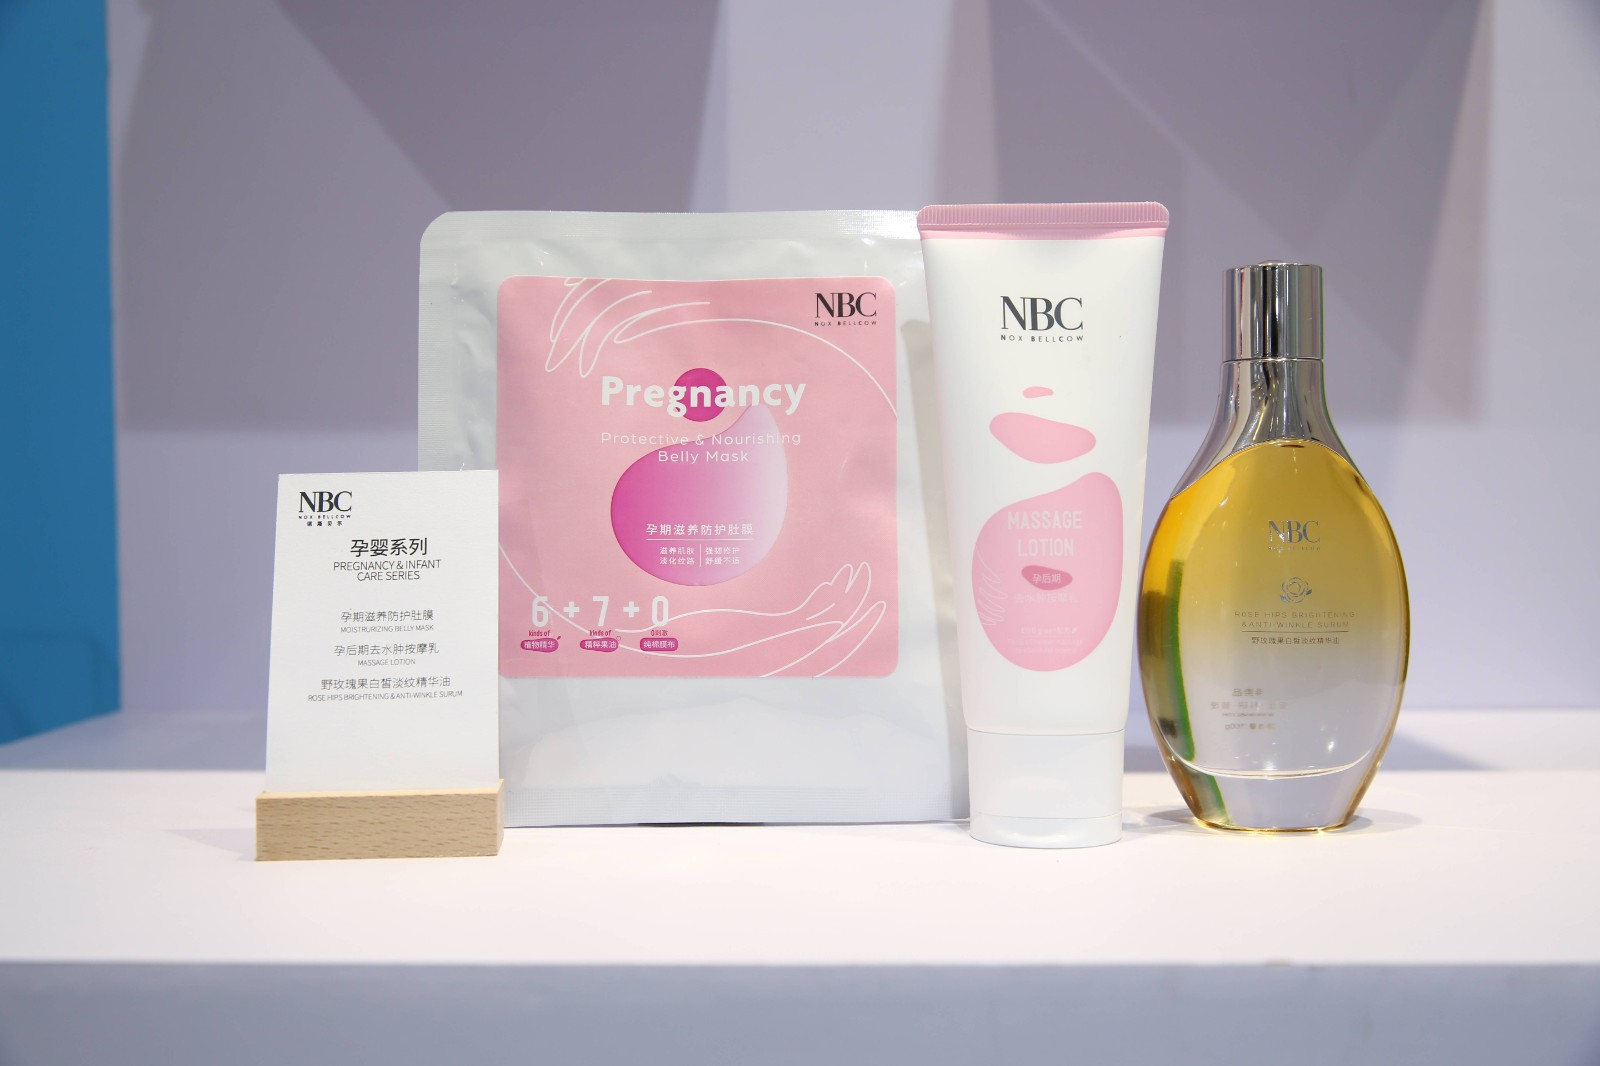 news-Pure Beauty | NBC at the China Beauty Expo 2020 with Seven New Product Series-NOX BELLCOW-img-4